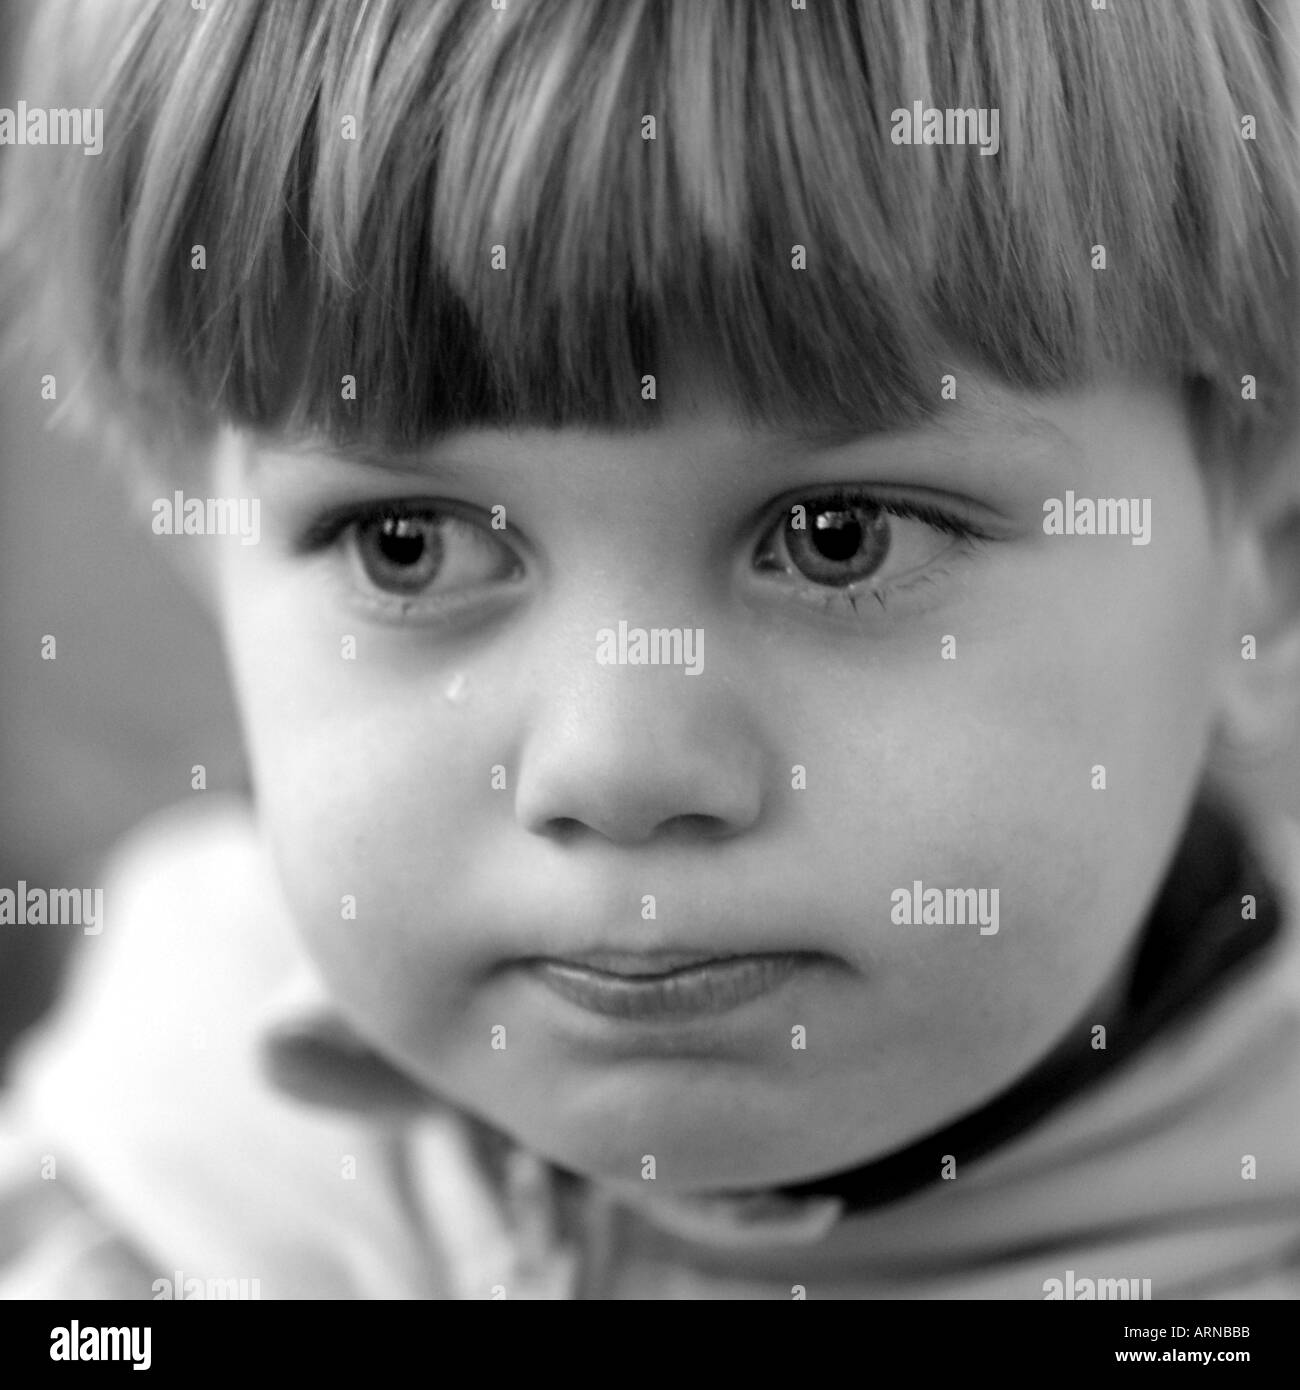 Child s face troubled boy - Stock Image